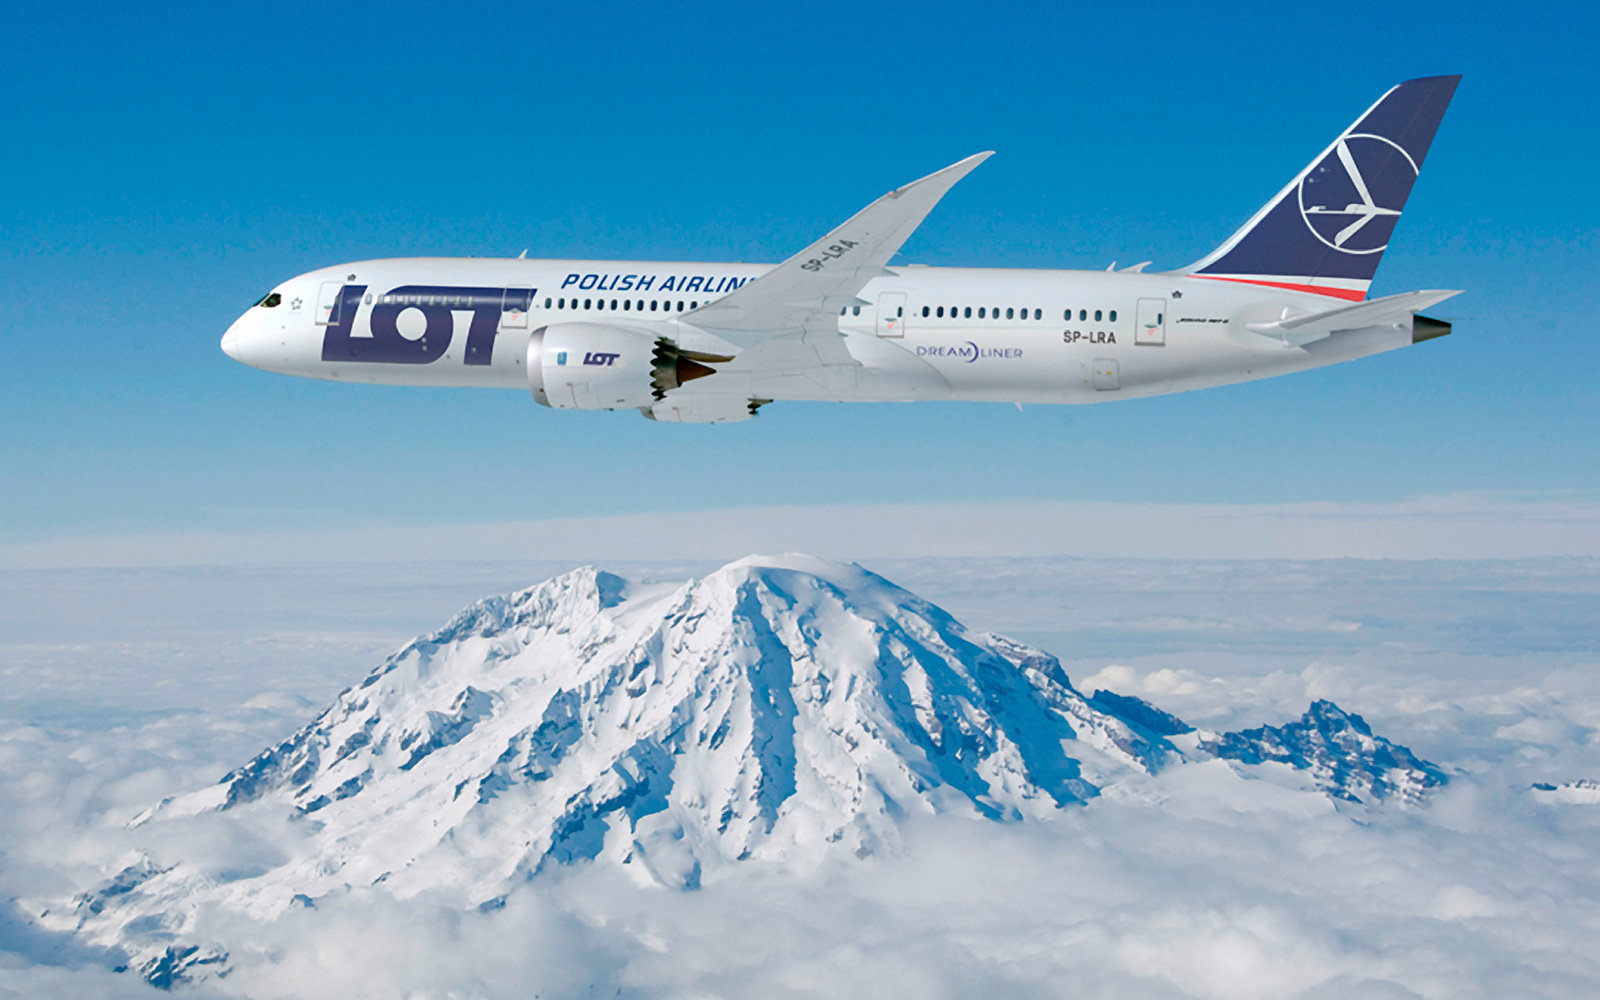 LOT Polish Airlines plane flies over a mountain